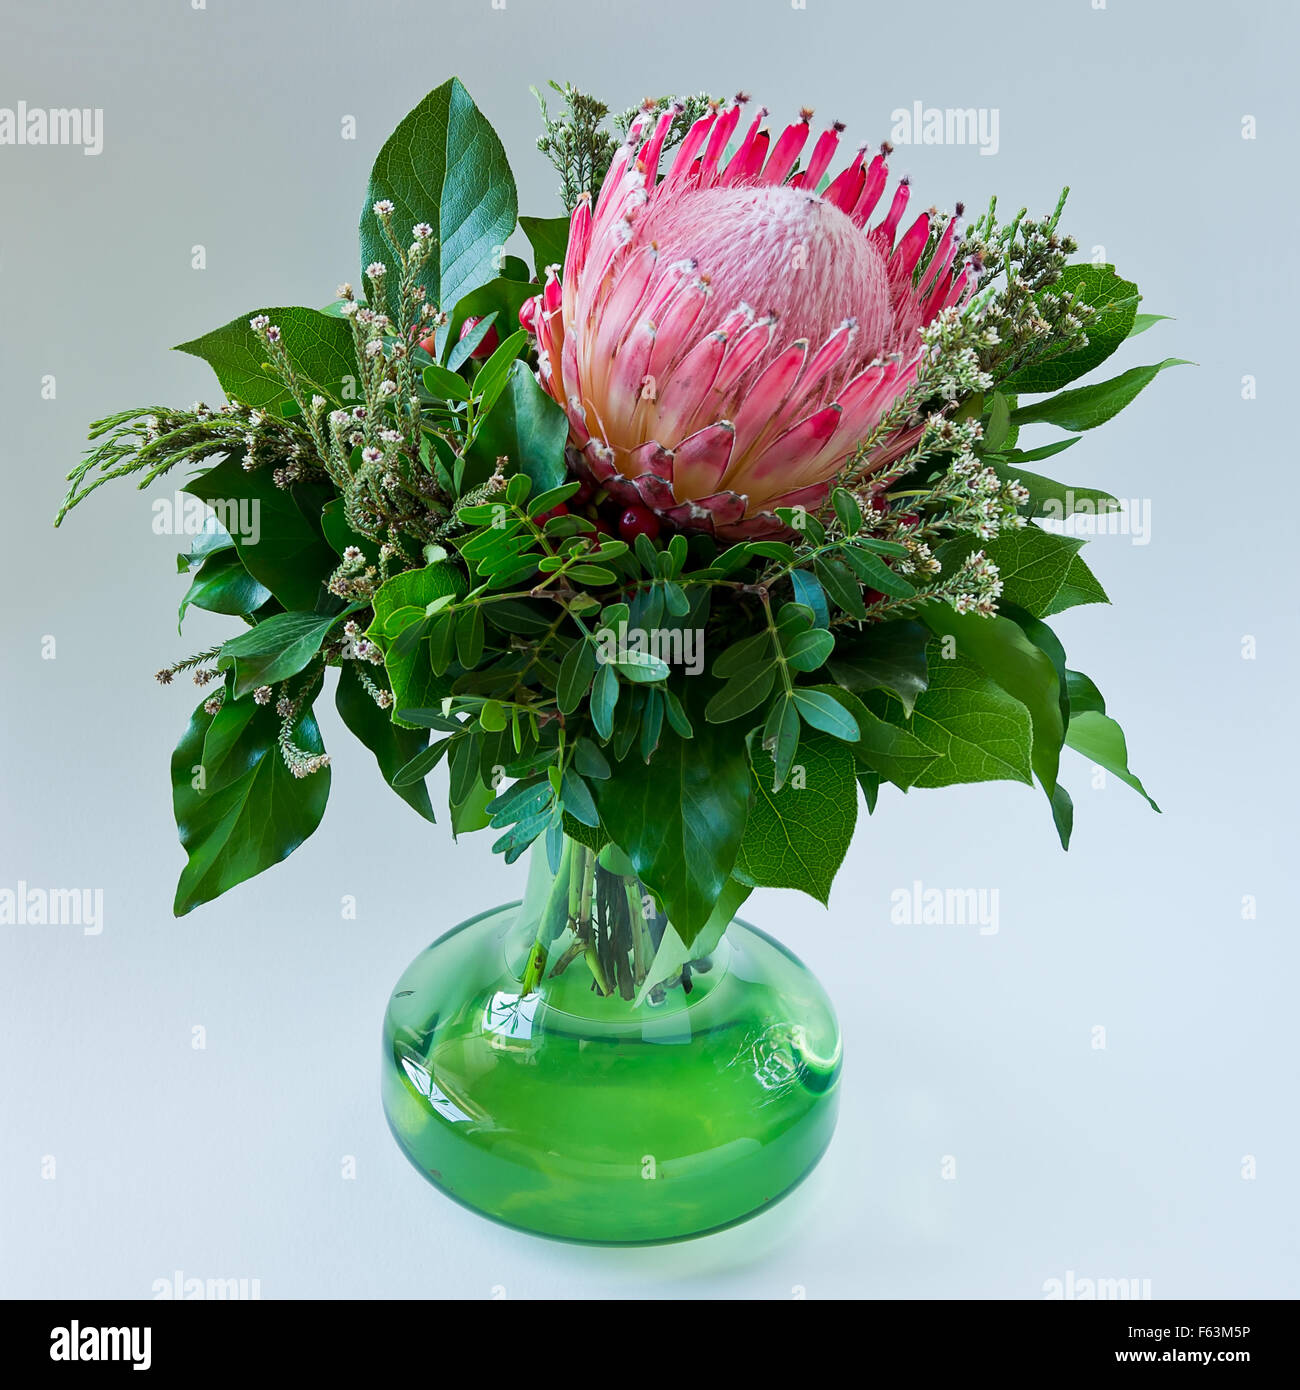 A Single Bloom Protea Bouquet: Wonderful Bouquet Of A Single Protea Blossom In A Green